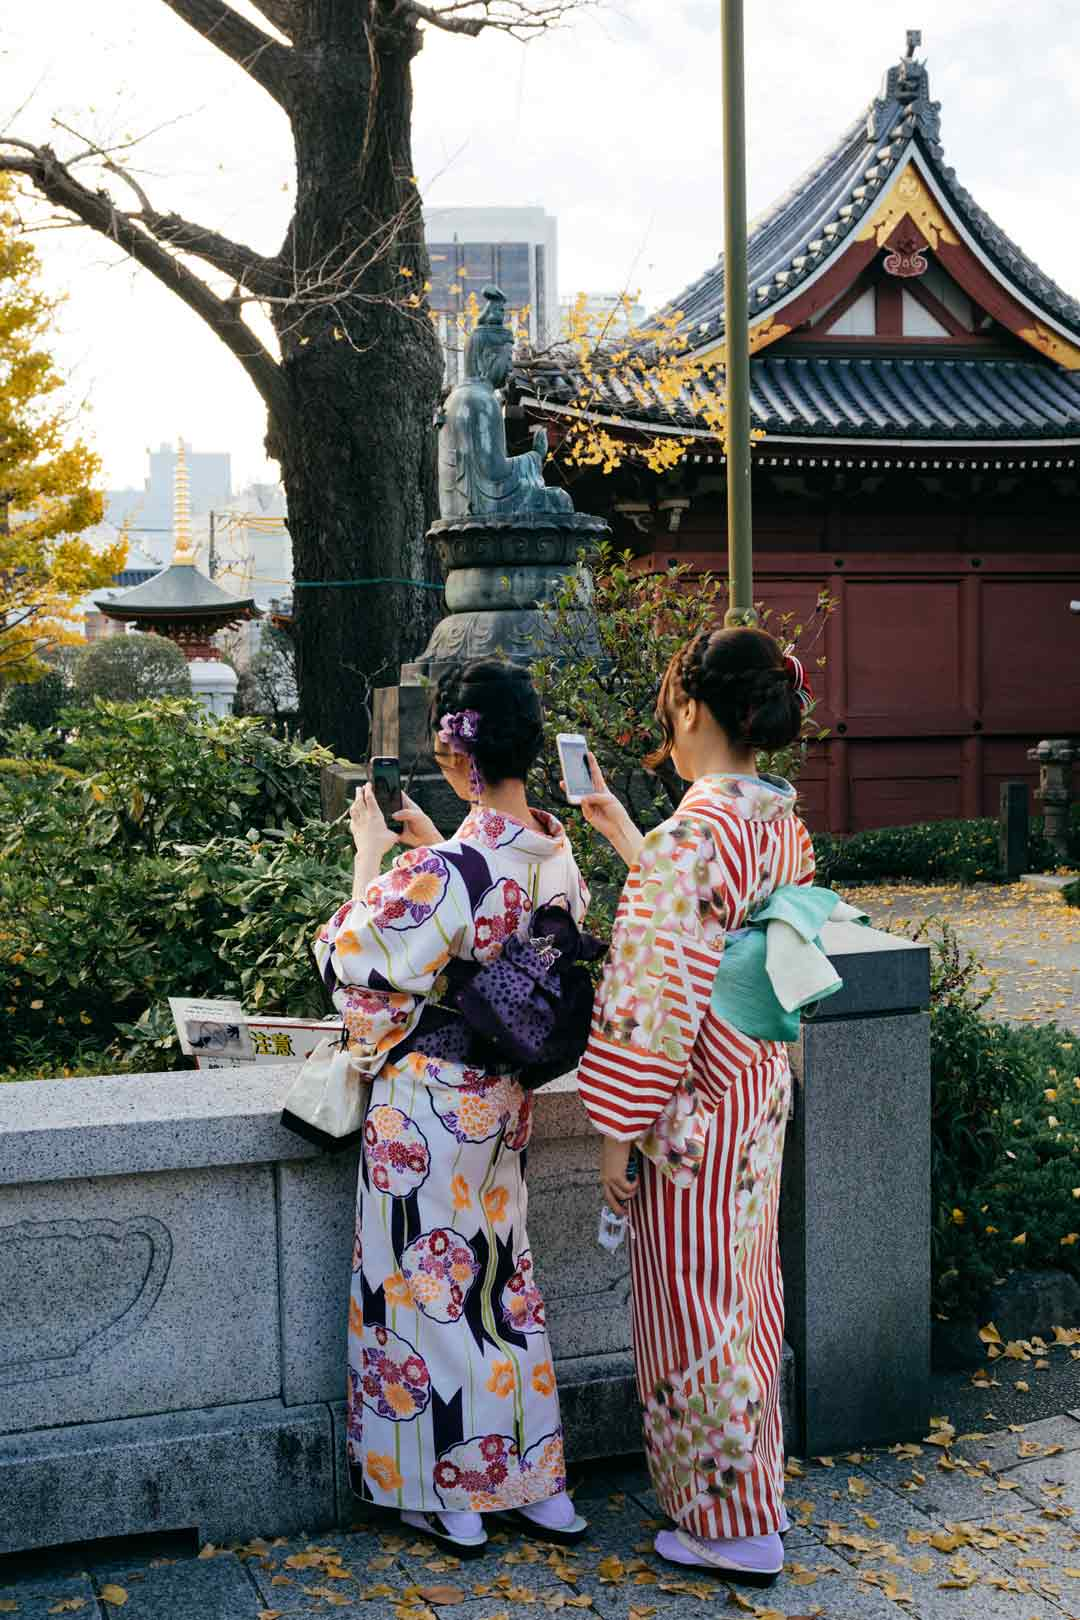 Two women dressed as traditional Geishas in Japan.